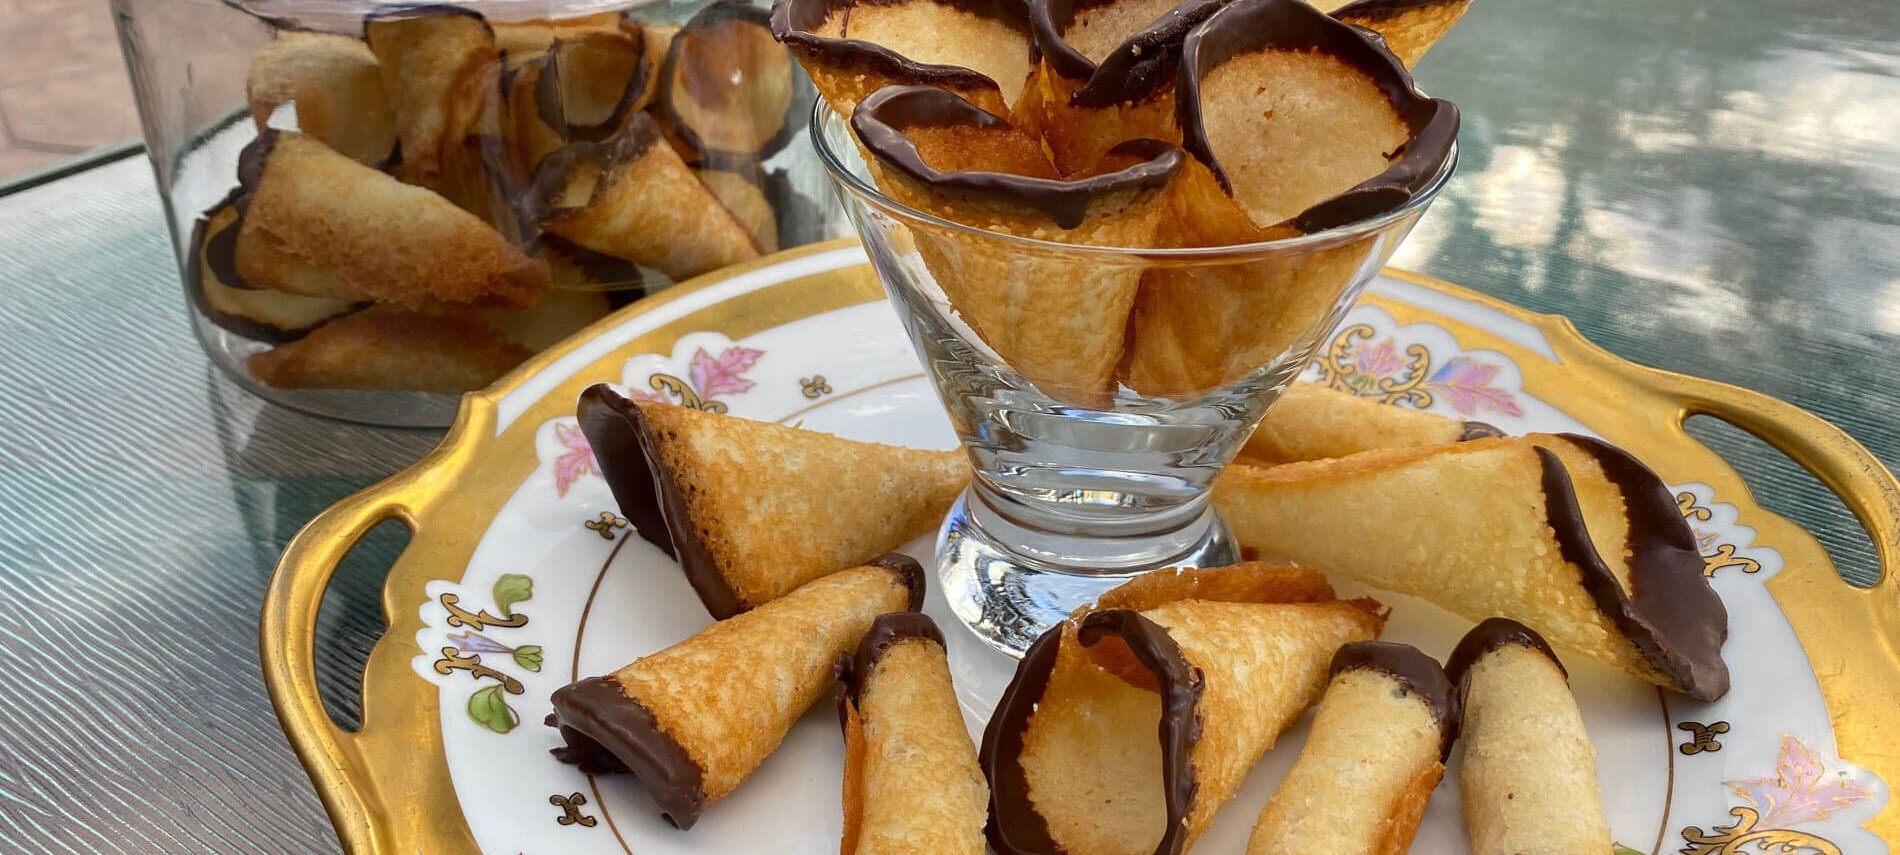 Cone shaped golden cookies in a martini glass and on a plate with the edges dipped in chocolate